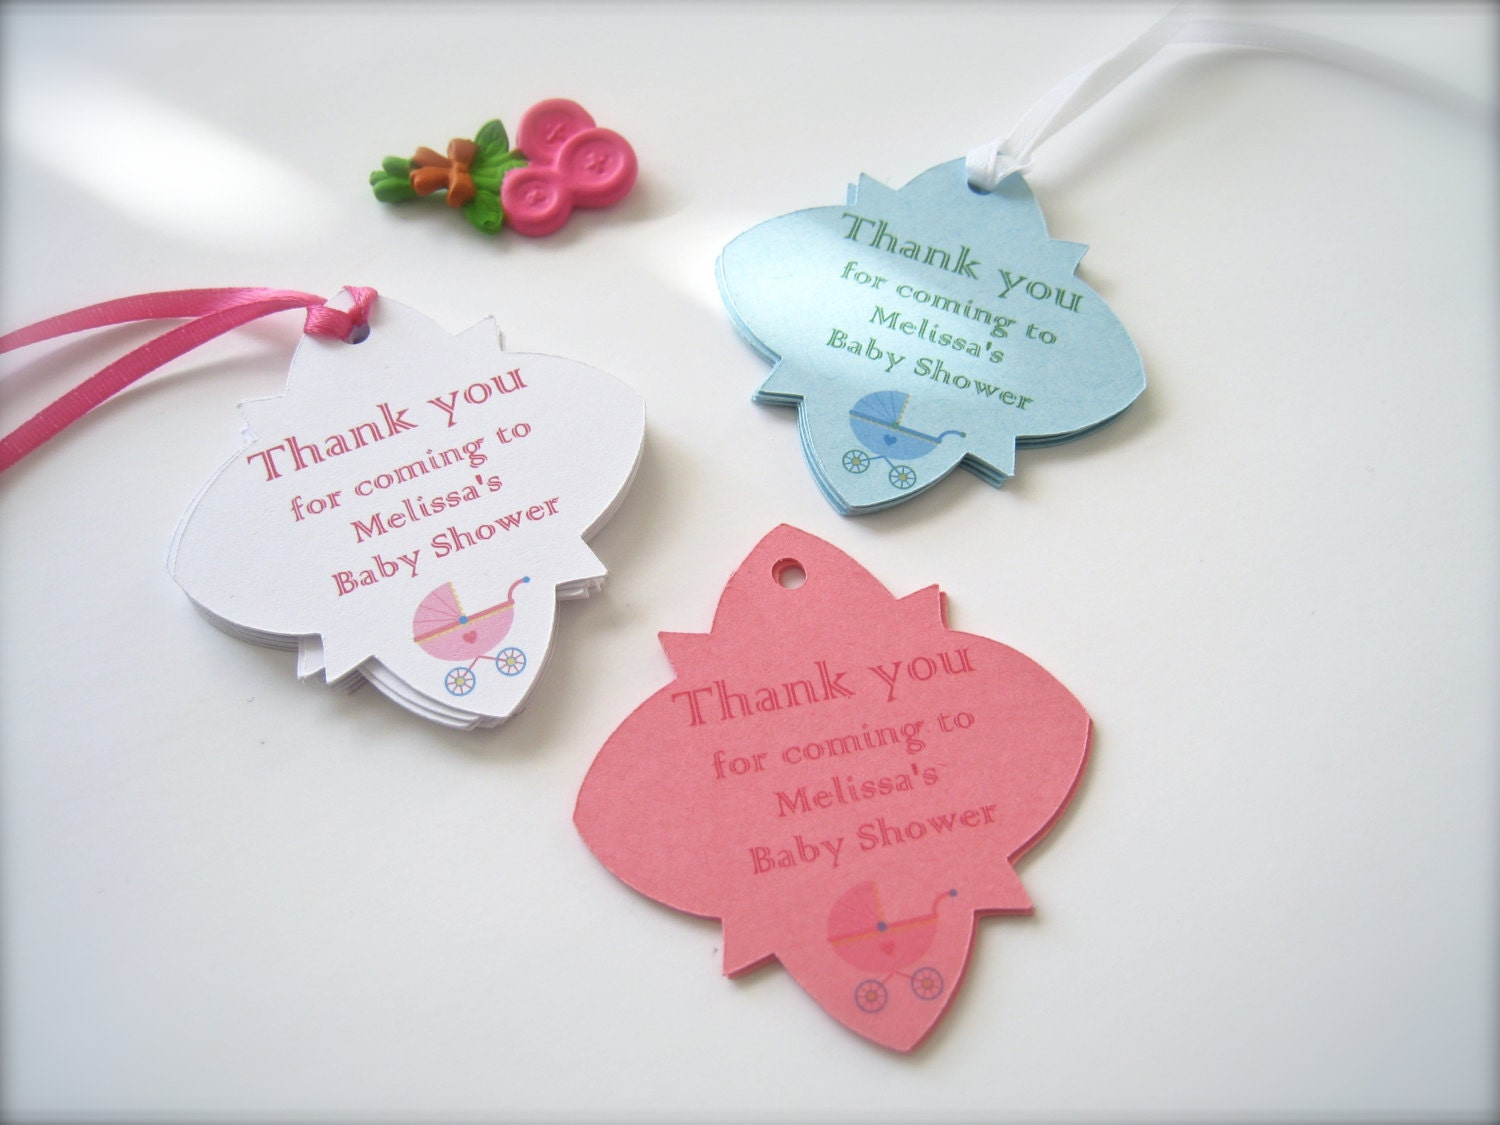 Baby shower favor tags, custom shower tags, party favor tags - 25 tags - PaperLovePrints